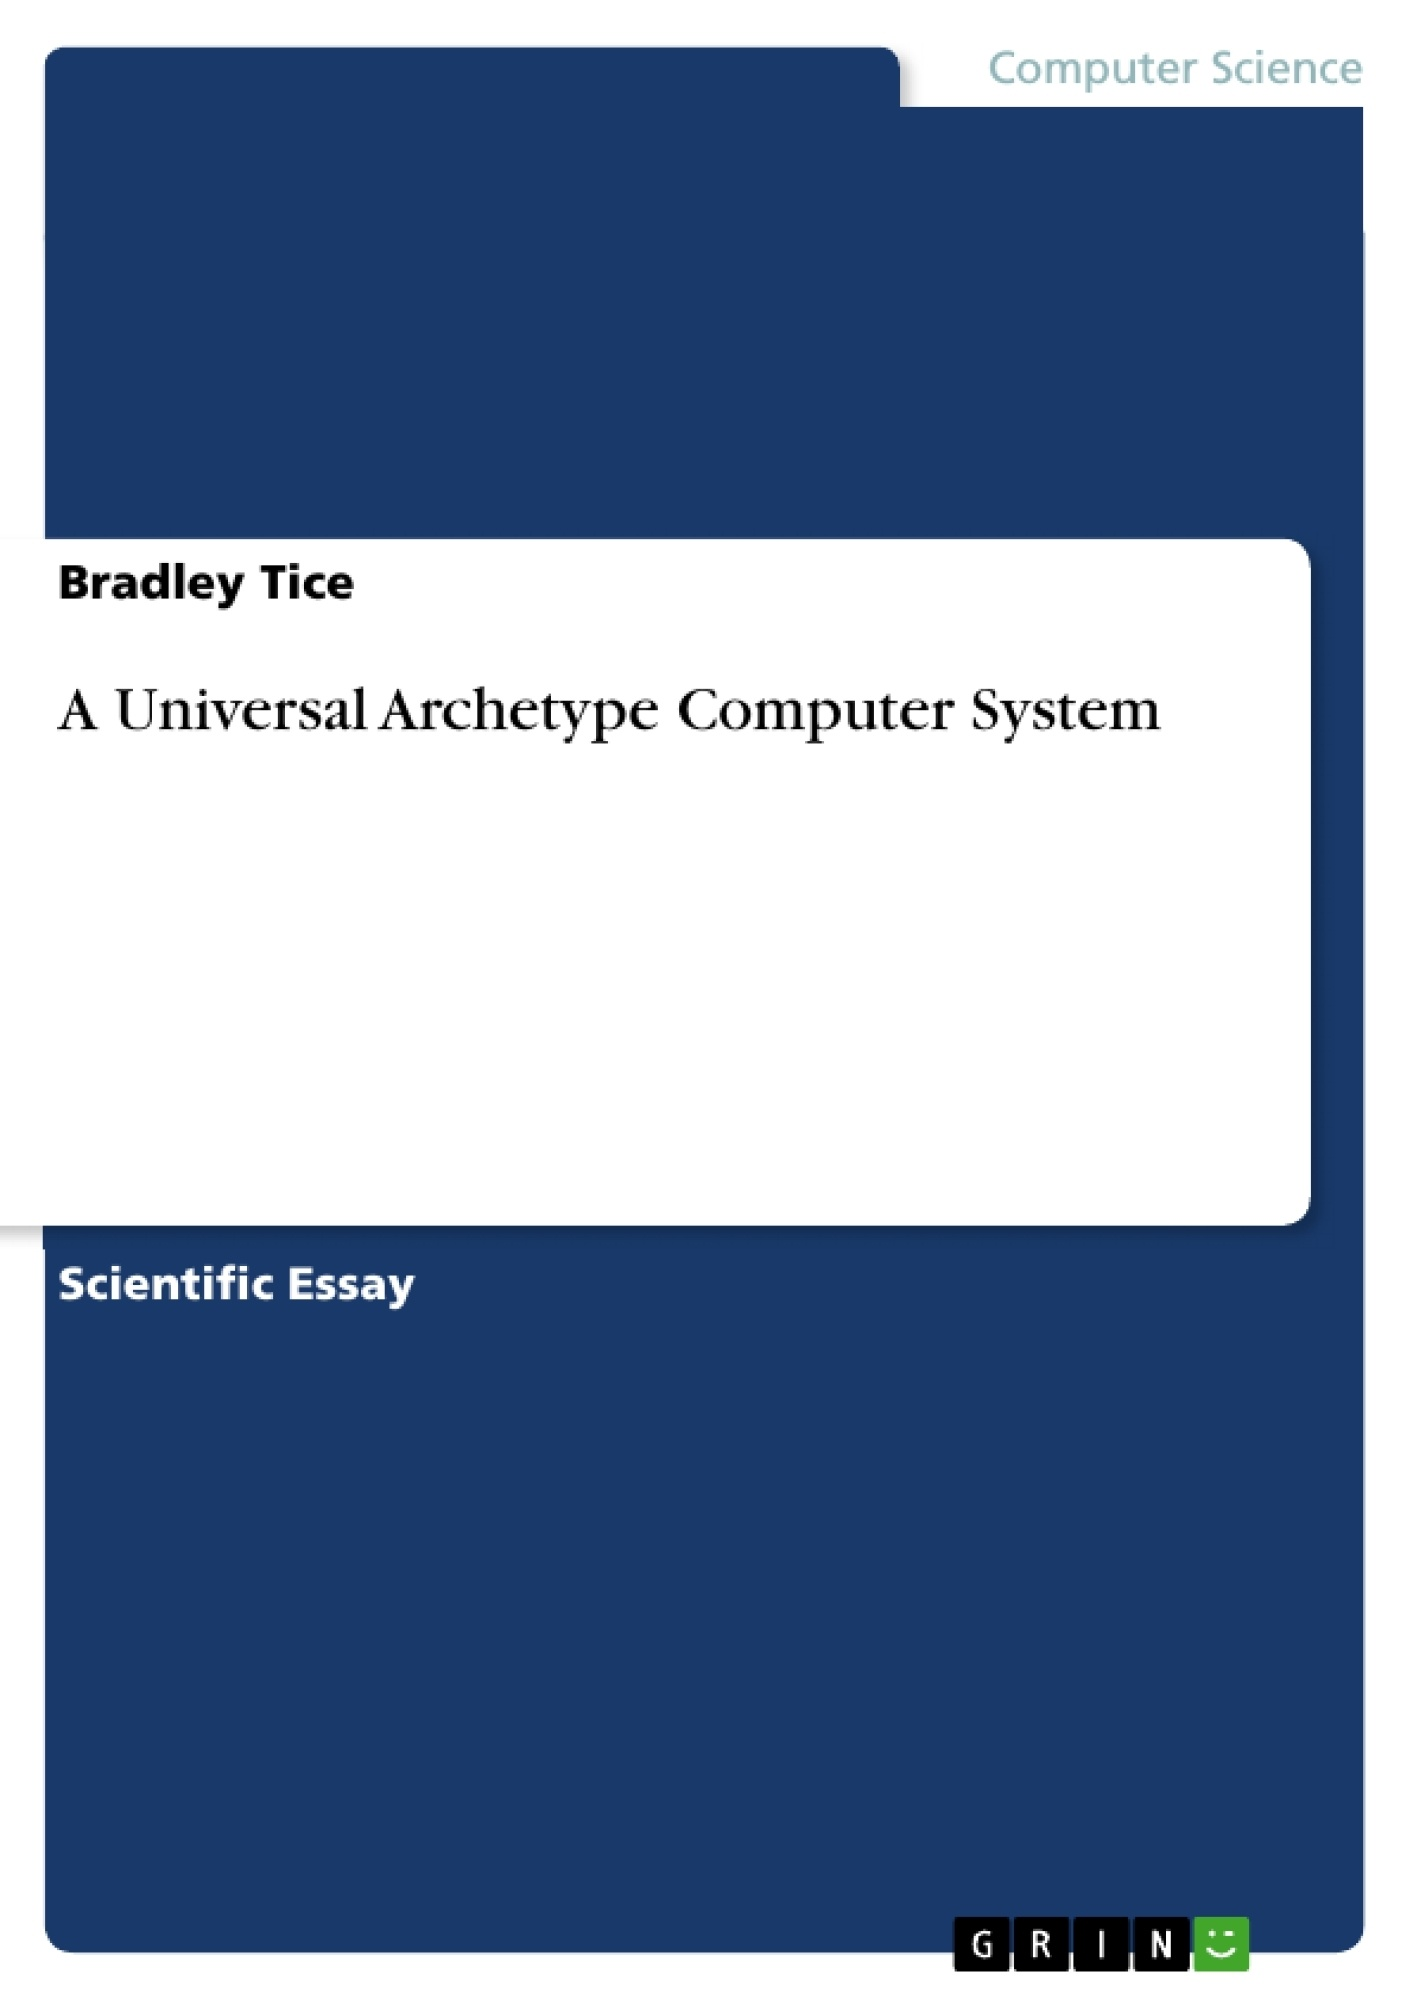 Title: A Universal Archetype Computer System